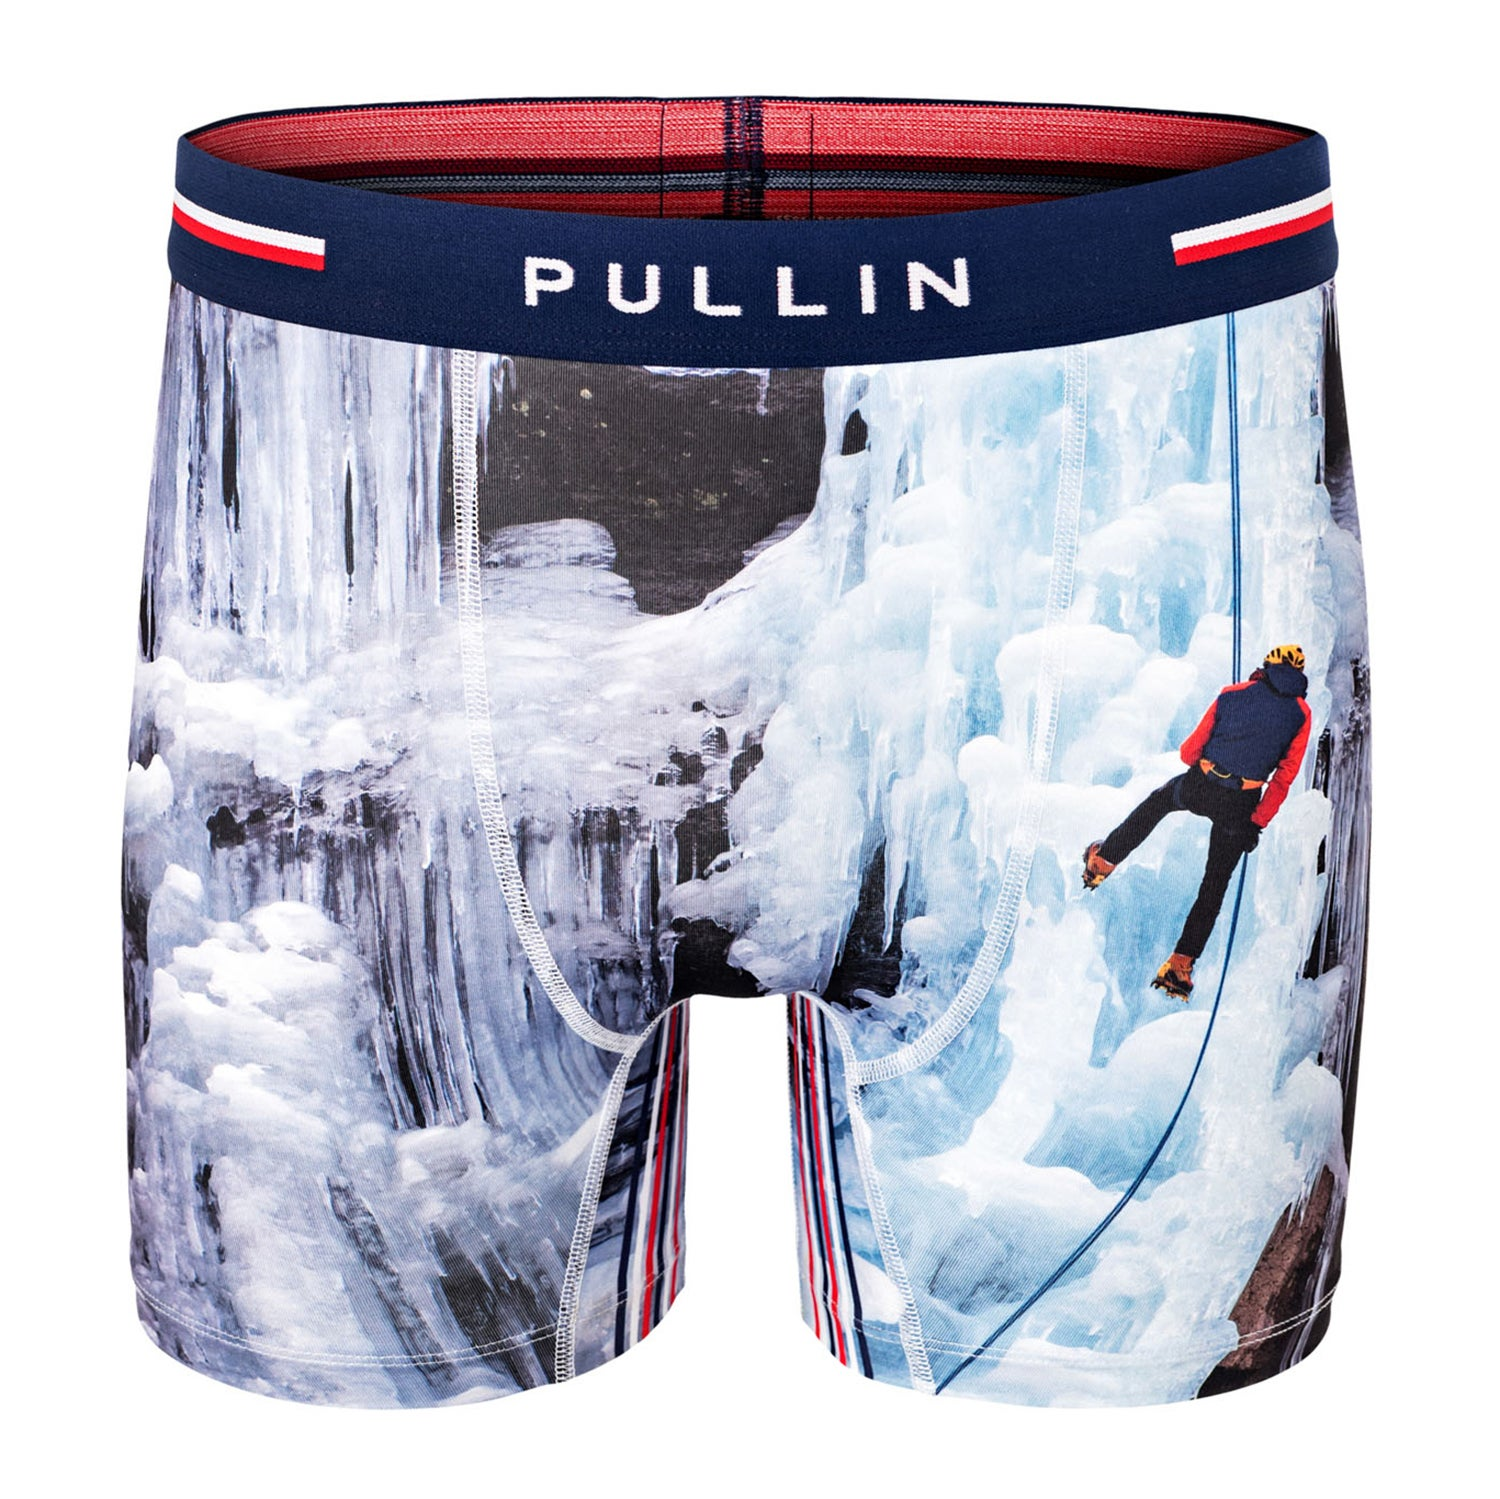 Pull-in Fashion Boxer Shorts - Alpiniste